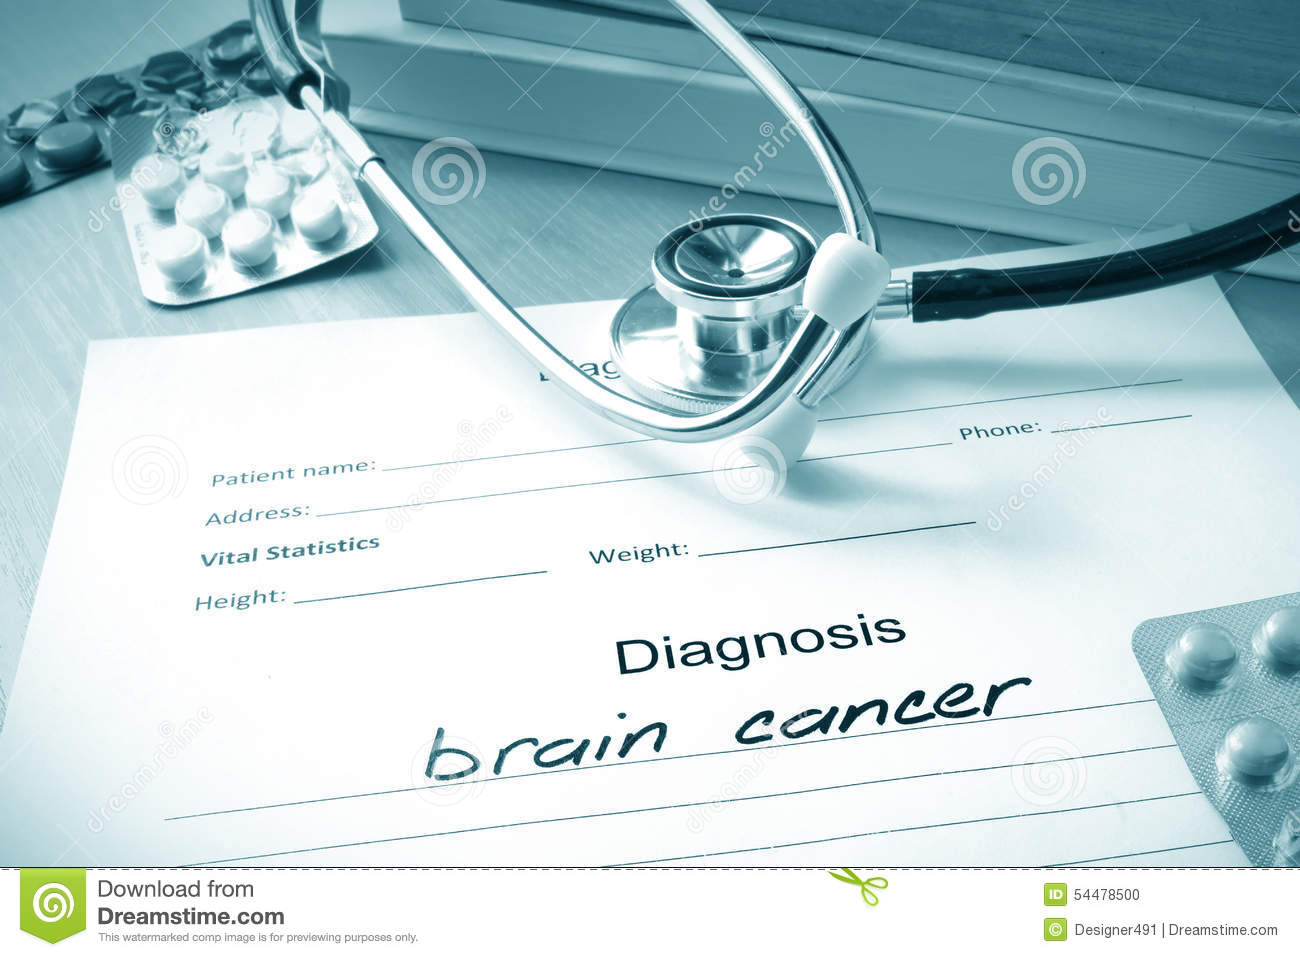 Diagnostic form with diagnosis brain cancer